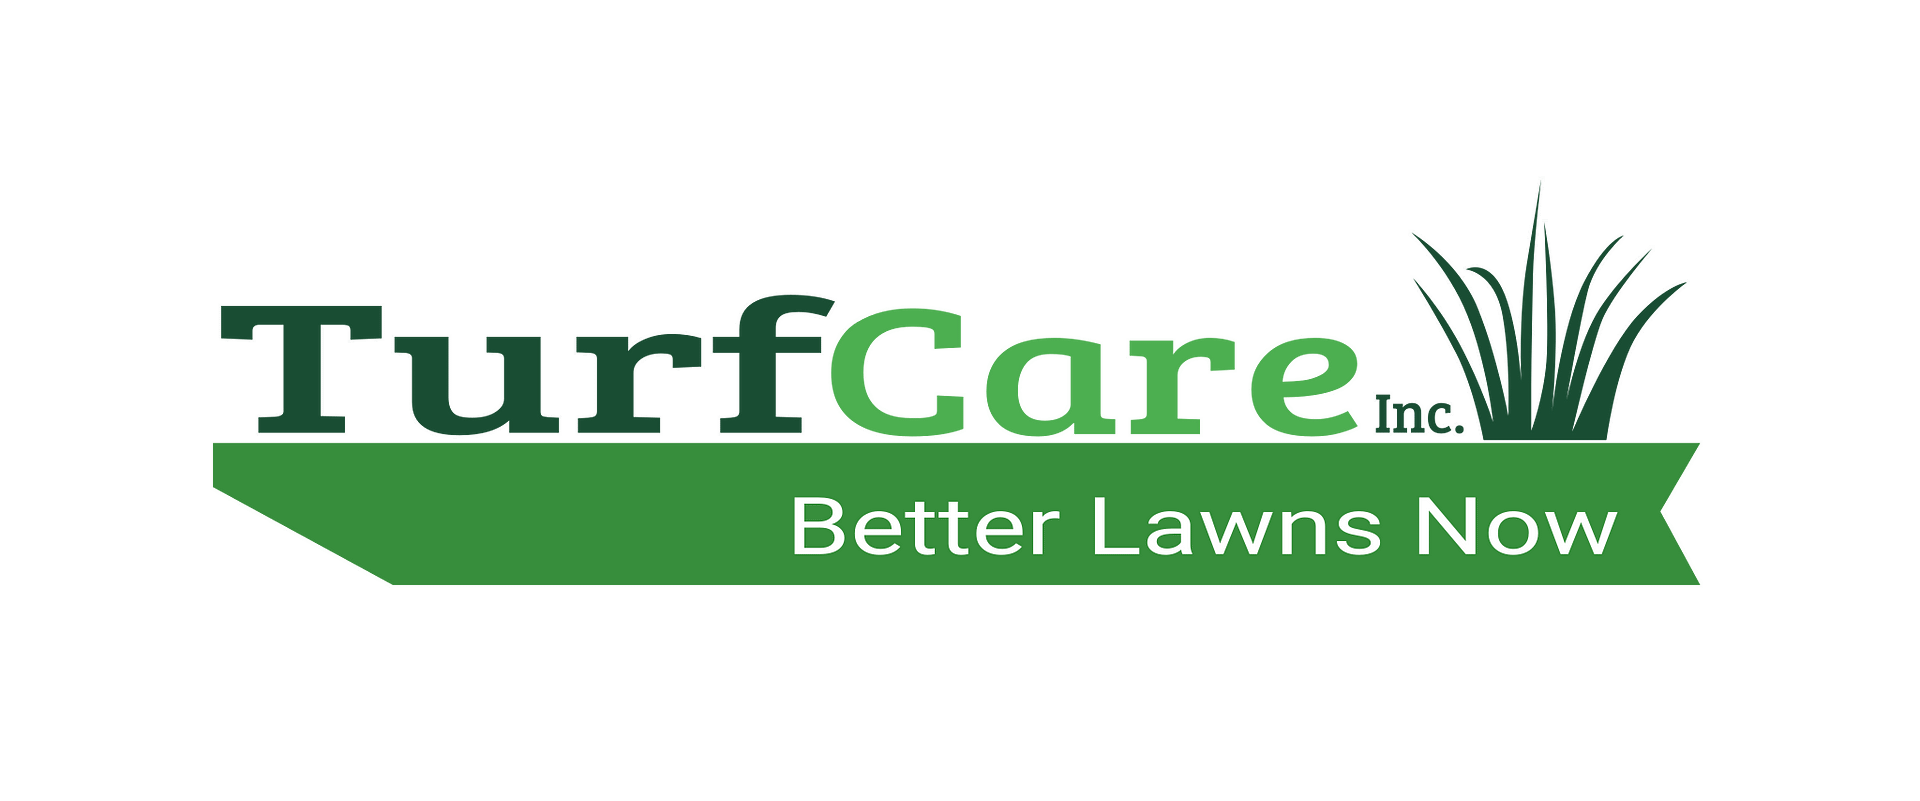 Christmas Lighting Lawn Mower Repair and Service and sales